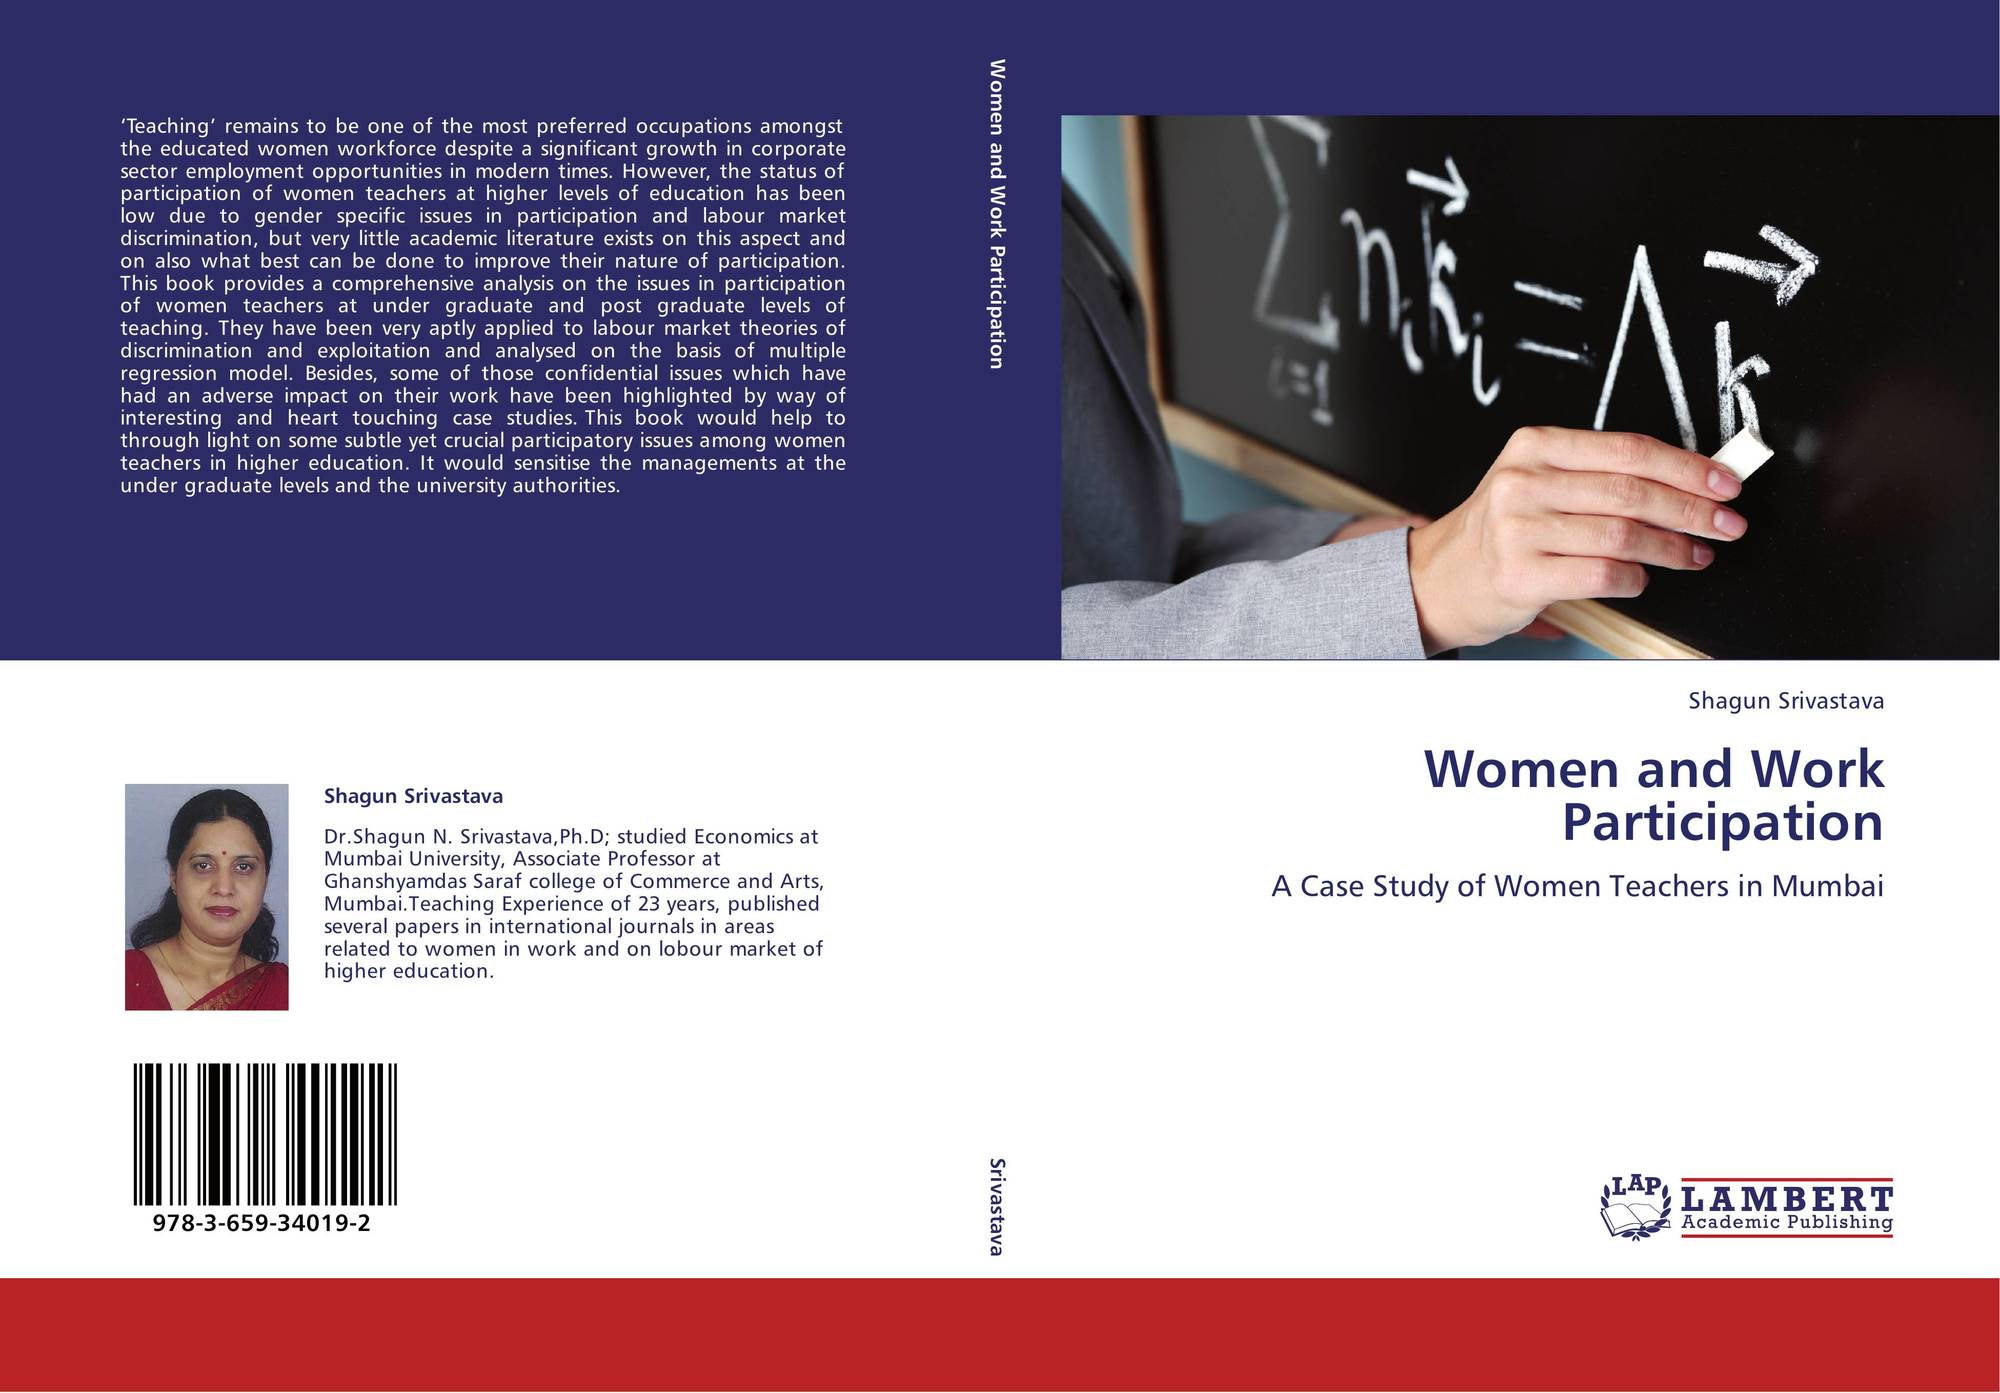 an analysis of women and workforce The state of women in america a 50-state analysis of how women are while women made up only about one-third of the workforce in 1969, women today make up almost.